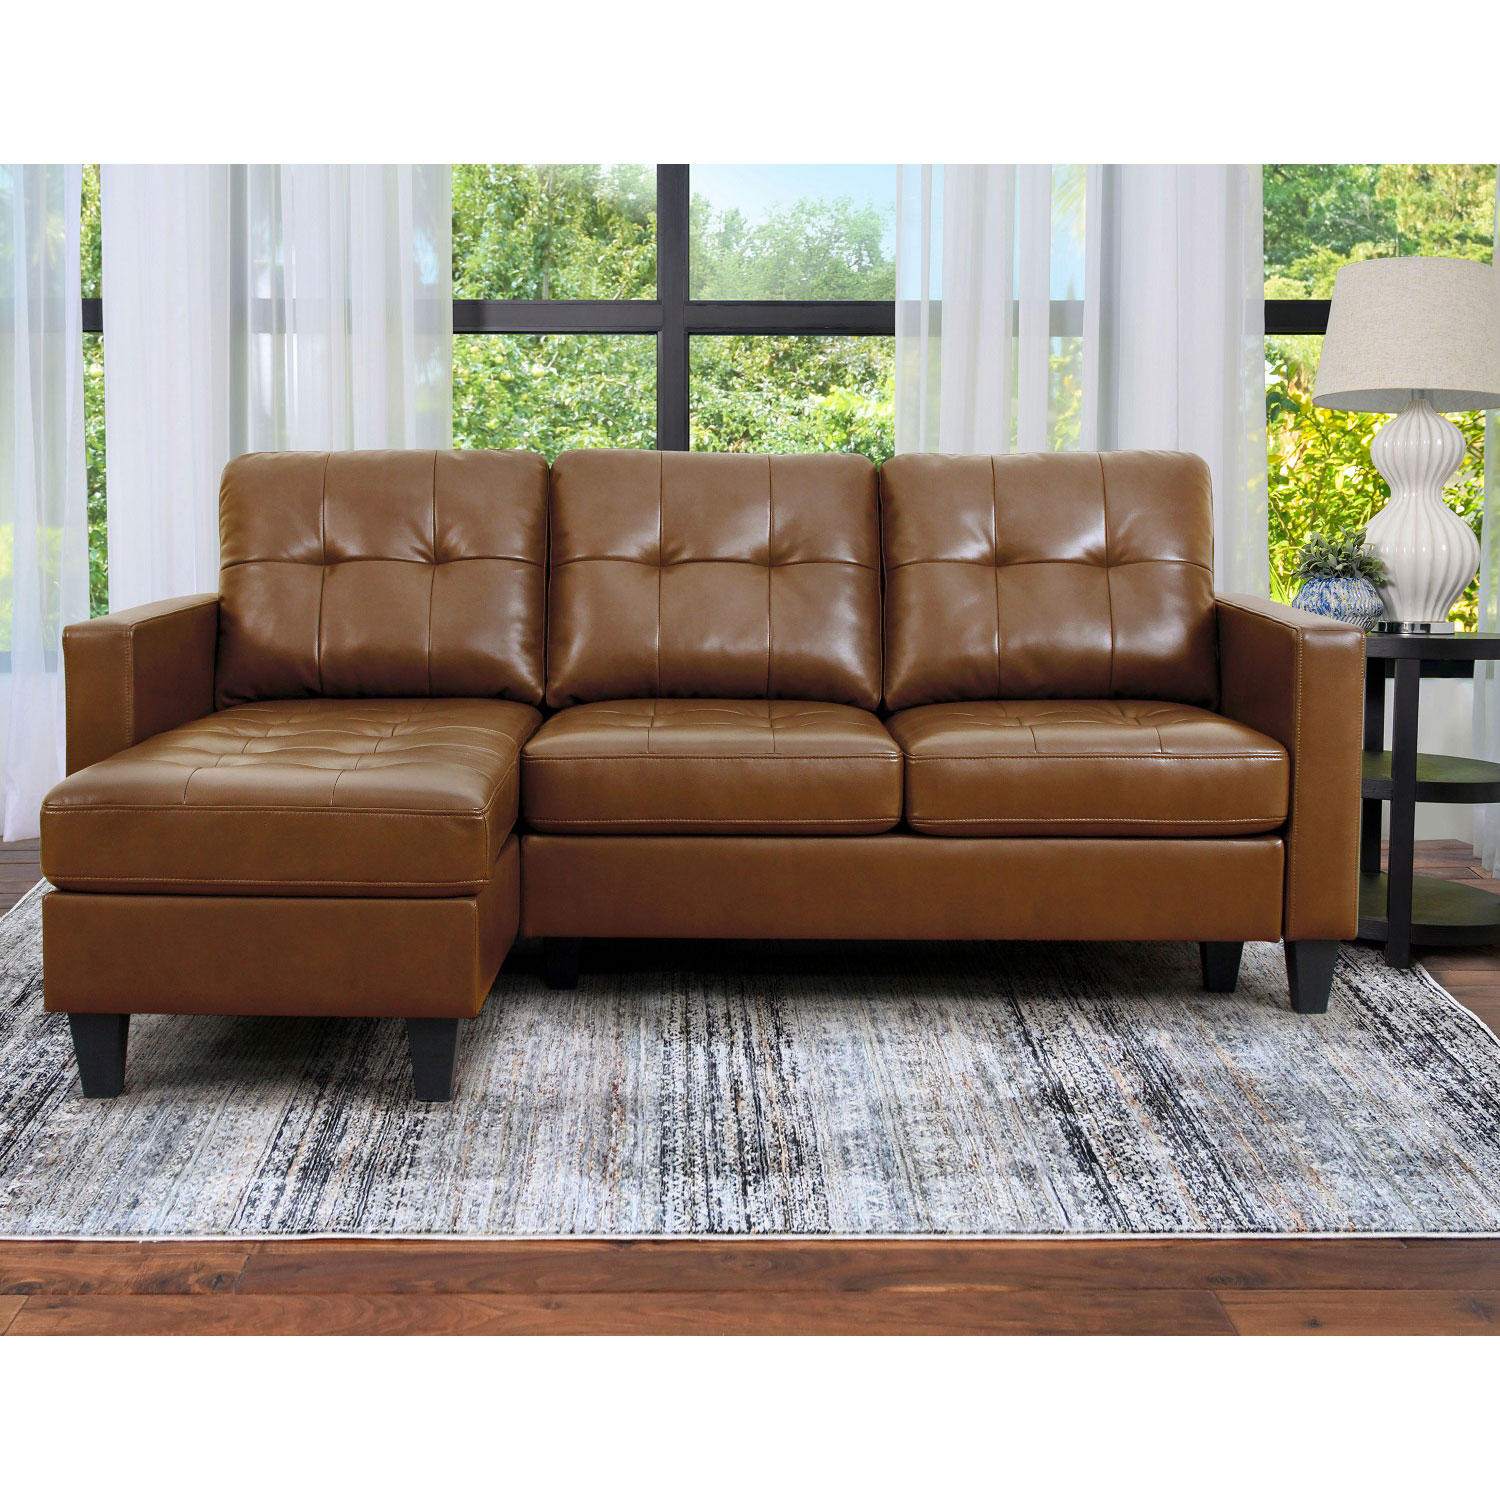 Abbyson Living KY-997B-BRN Ashbury Tufted Reversible Sectional (Assorted Colors)